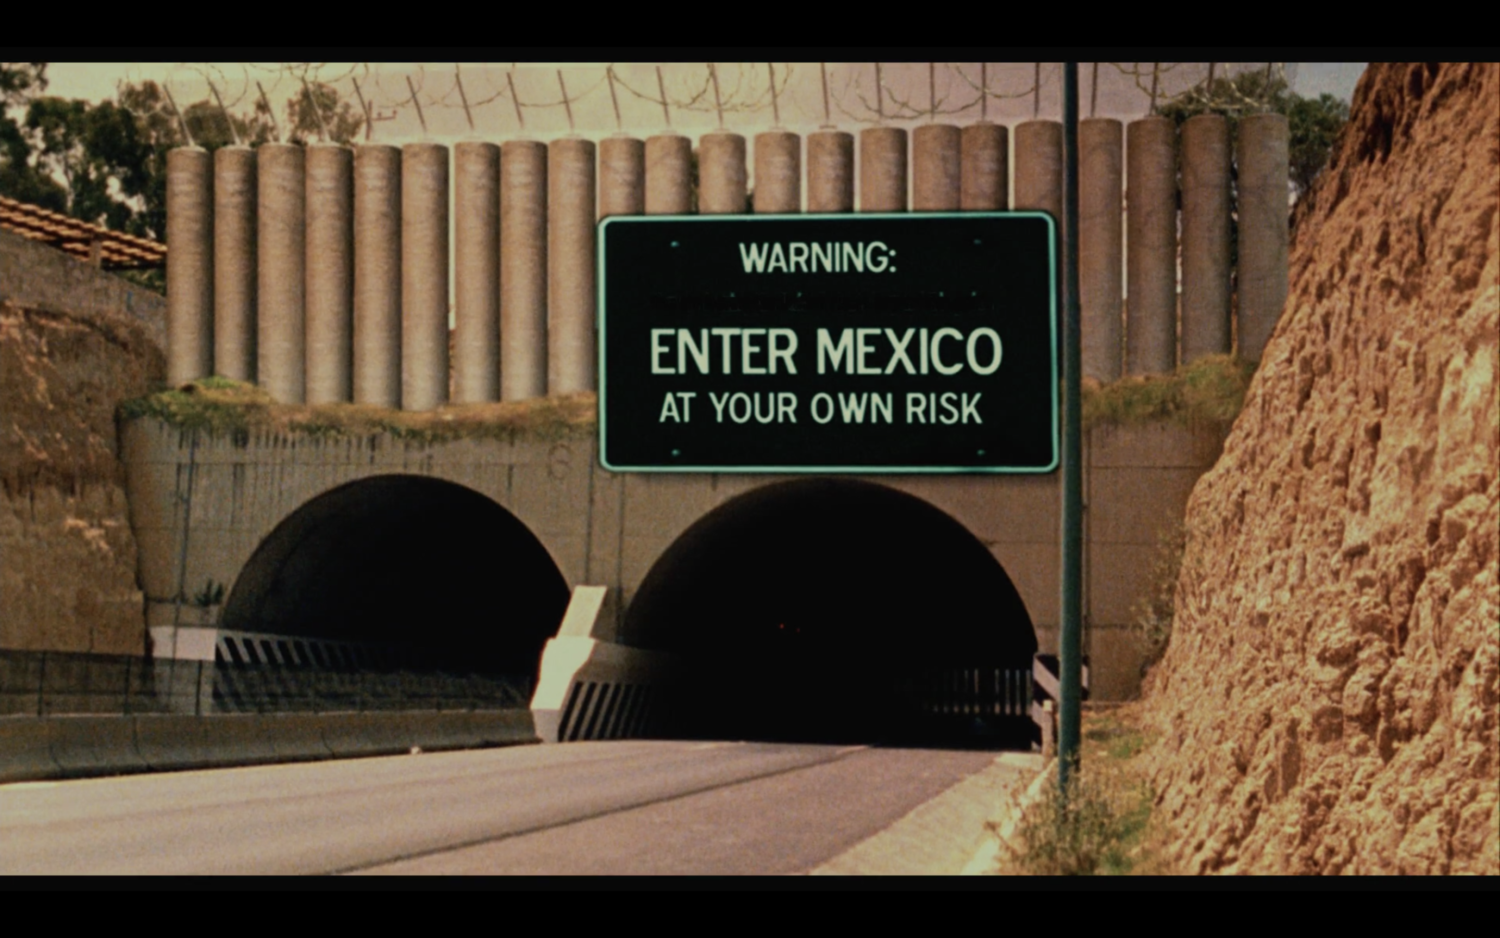 Figure 5. The view of the high-tech border wall from the perspective of Americans. Screenshot by the author.